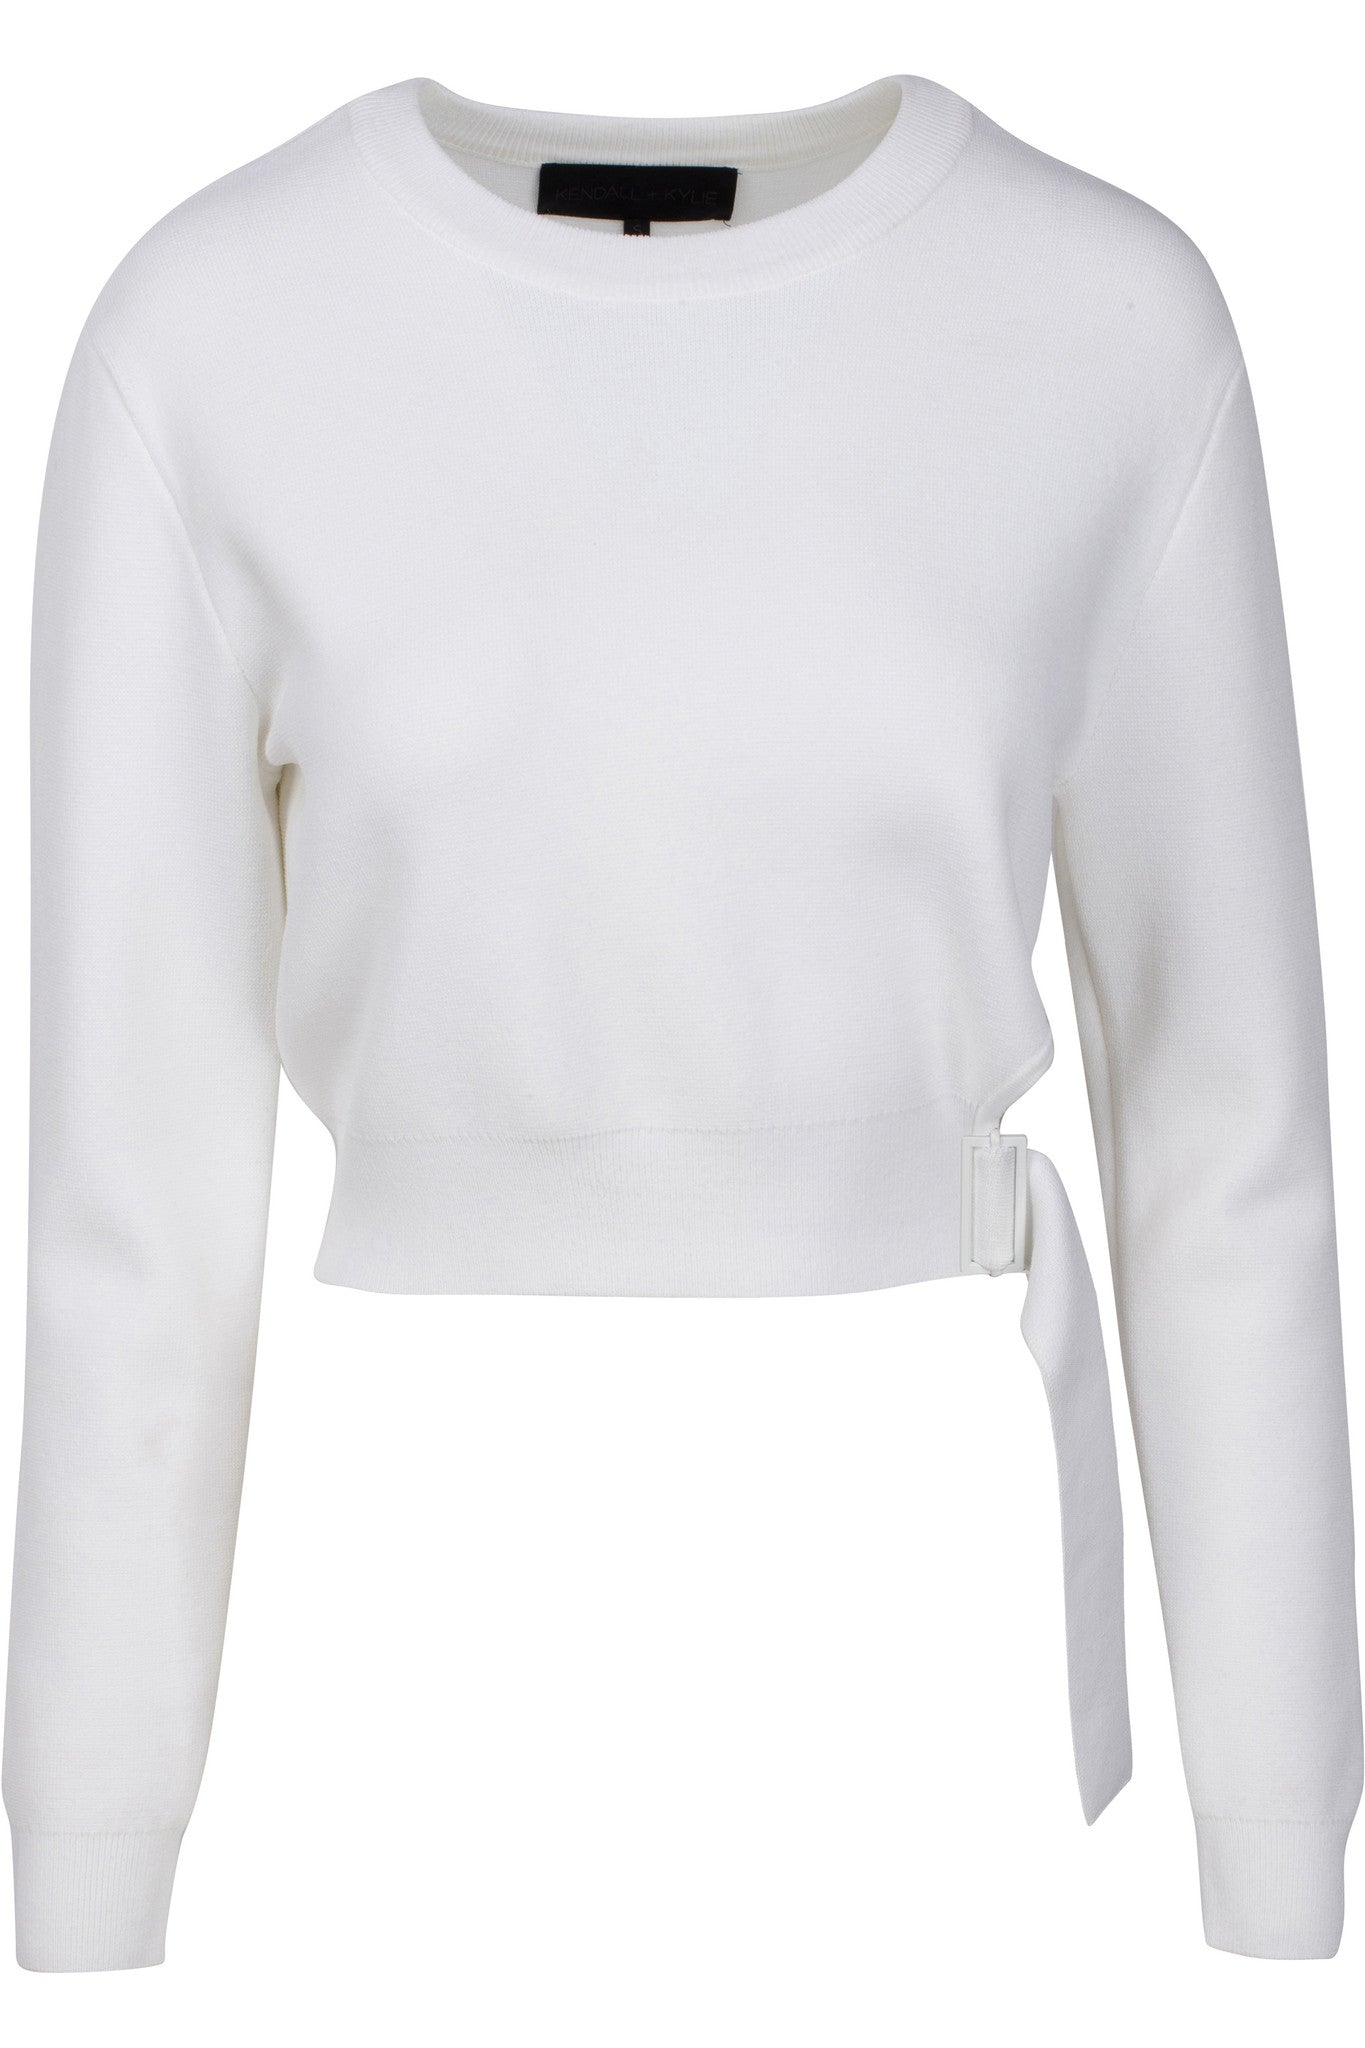 SIDE BUCKLE LONG SLEEVE TOP WHITE TOPS by KENDALL + KYLIE